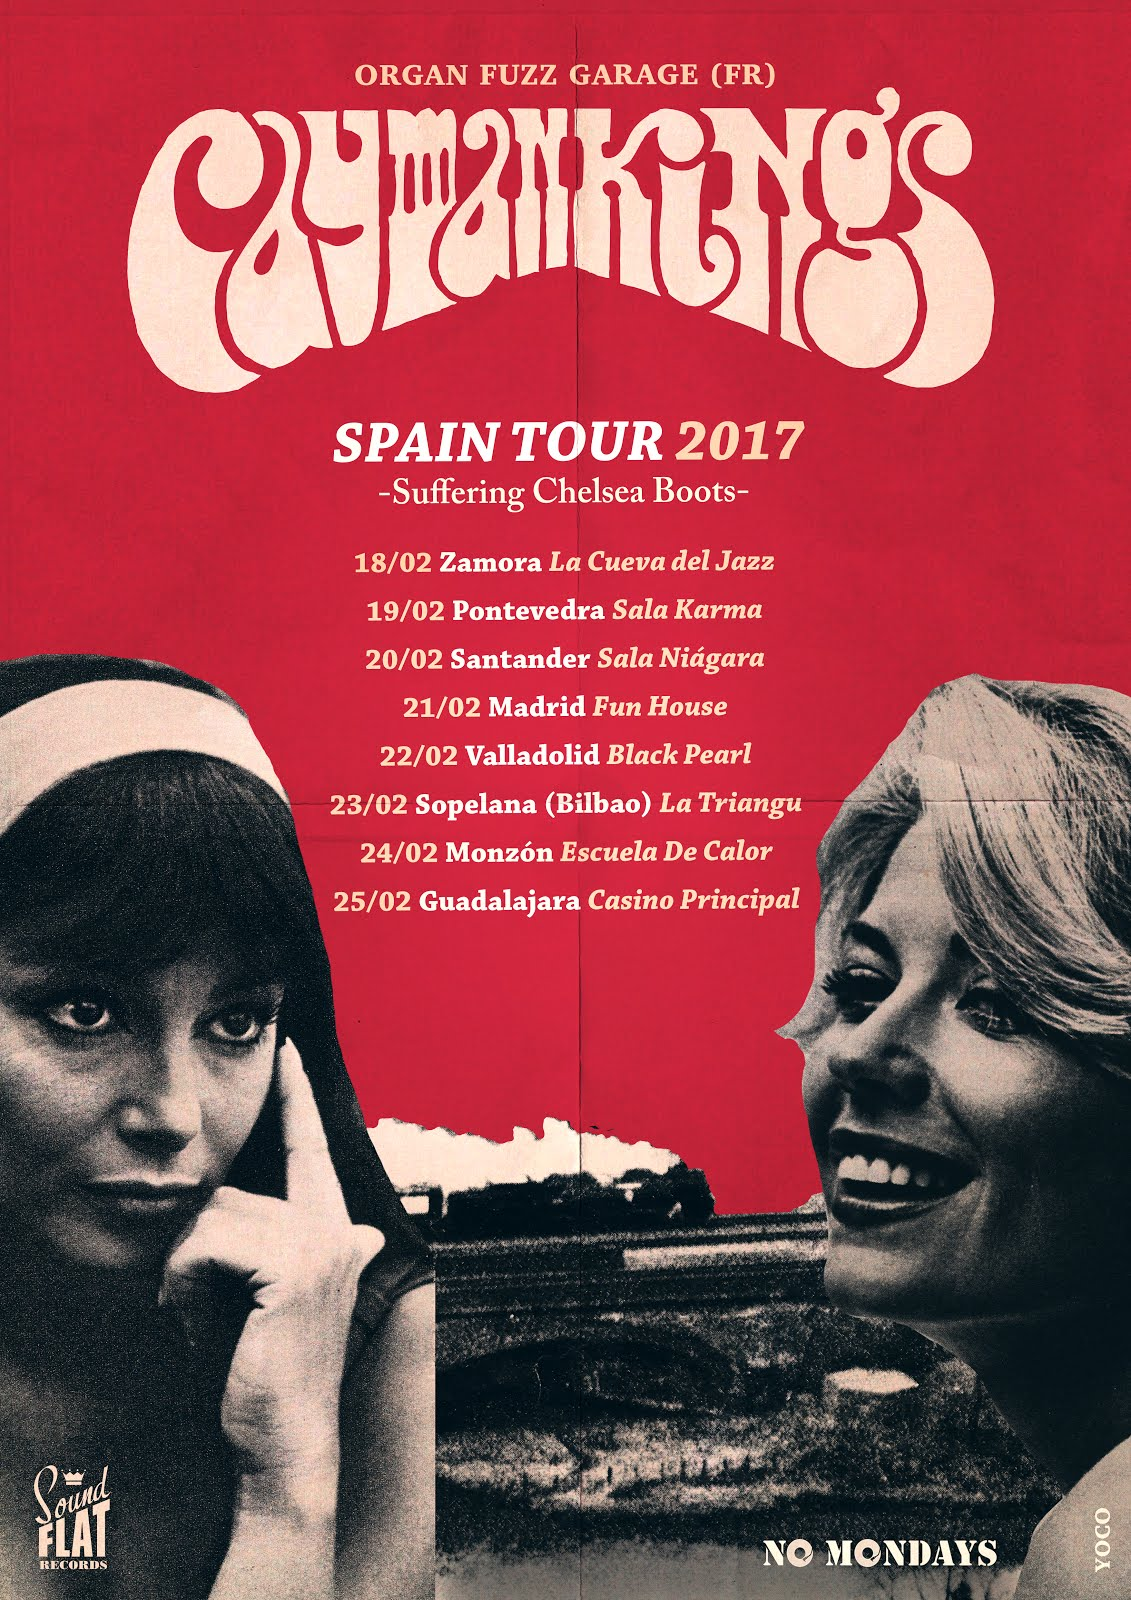 "Cayman Kings Spain Tour 2017 ""Suffering Chelsea Boots"""